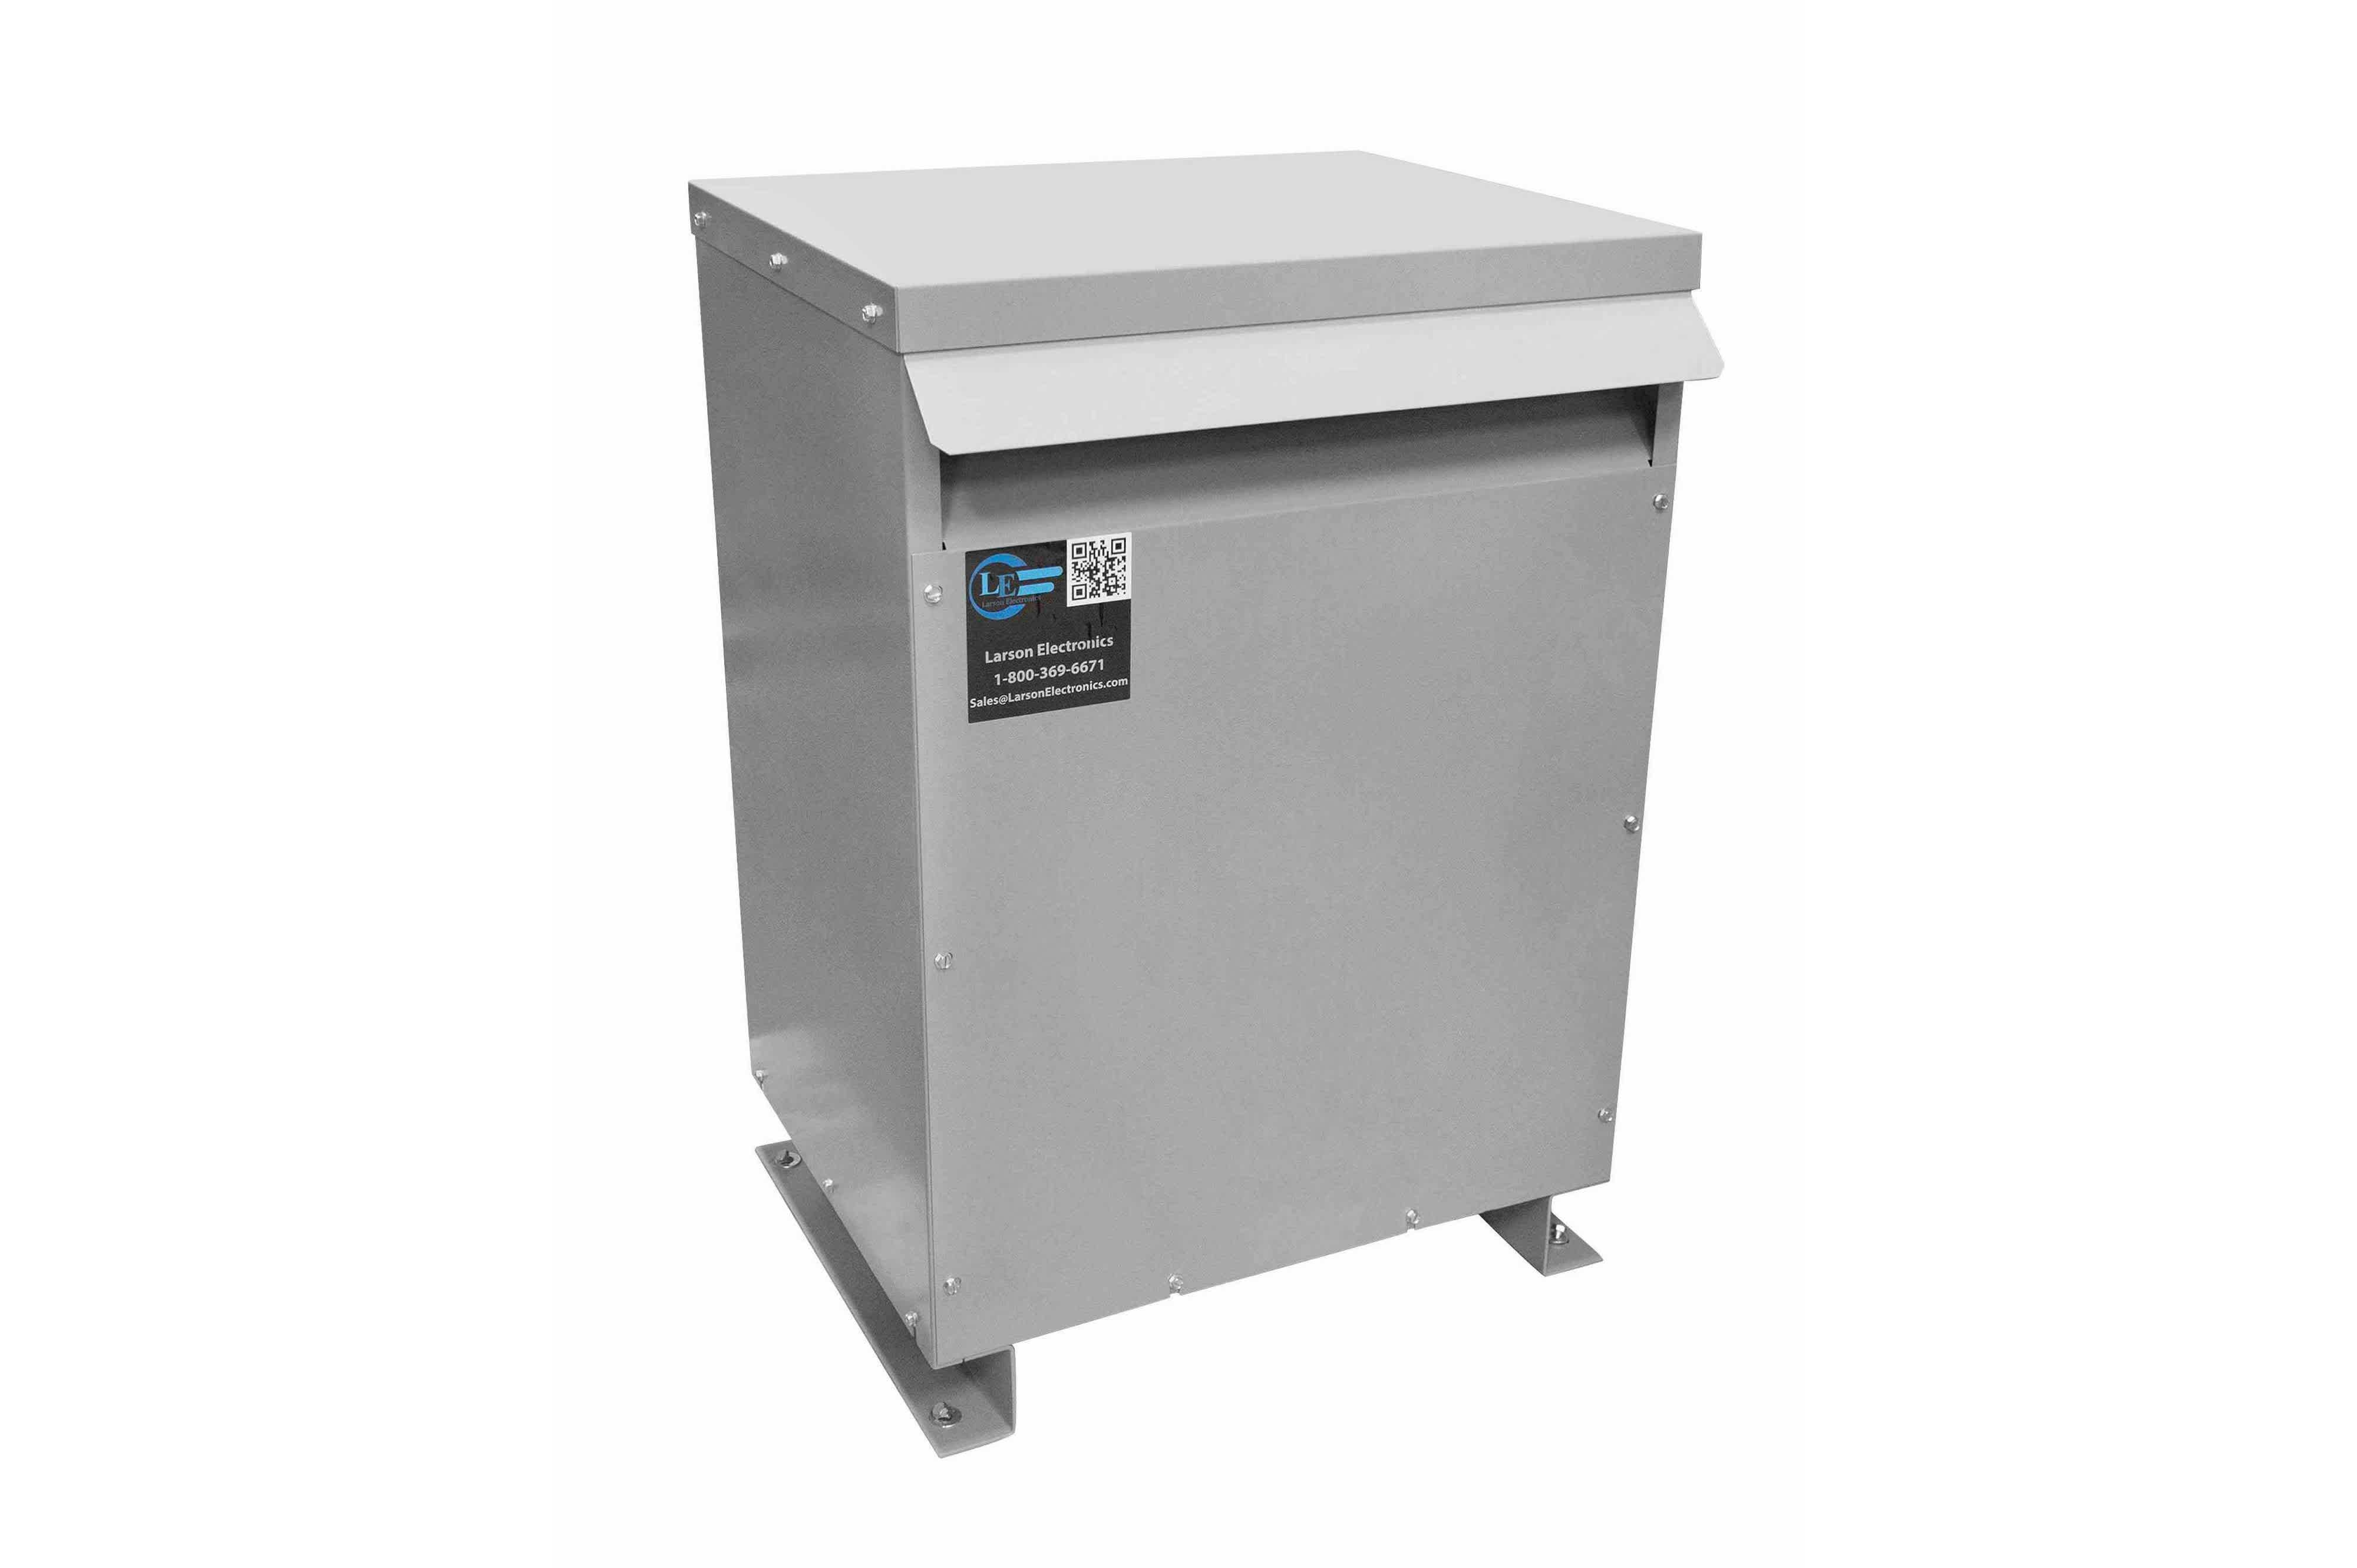 20 kVA 3PH Isolation Transformer, 575V Delta Primary, 400V Delta Secondary, N3R, Ventilated, 60 Hz